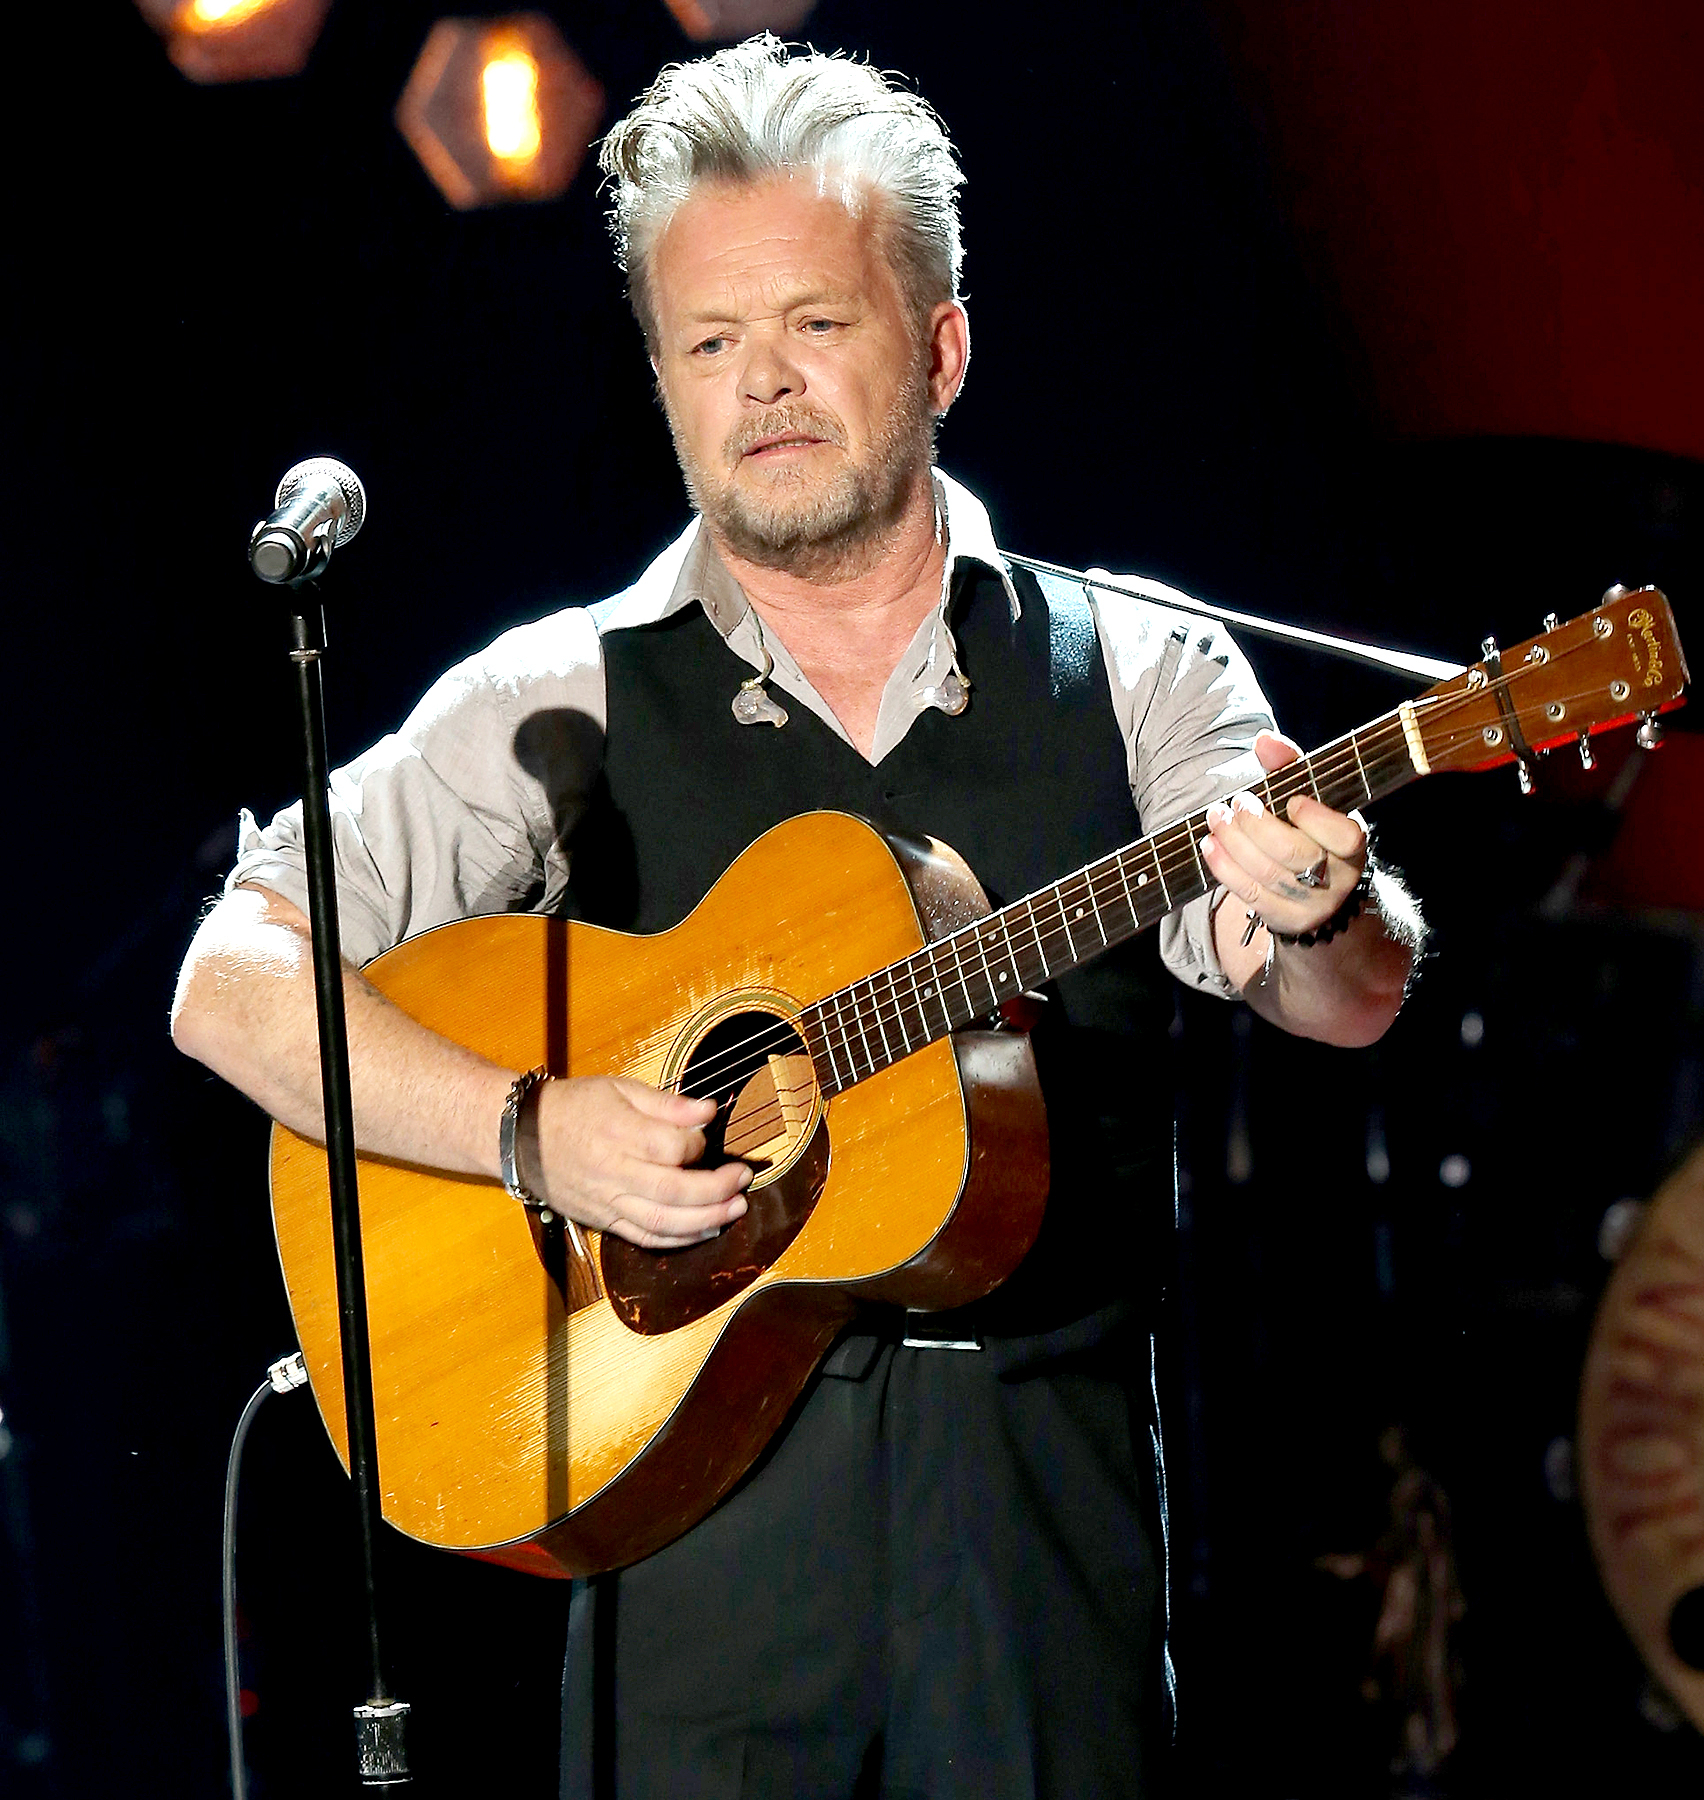 John Mellencamp performs onstage during CMT Crossroads: John Mellencamp and Darius Rucker on February 24, 2017 in Nashville, Tennessee.